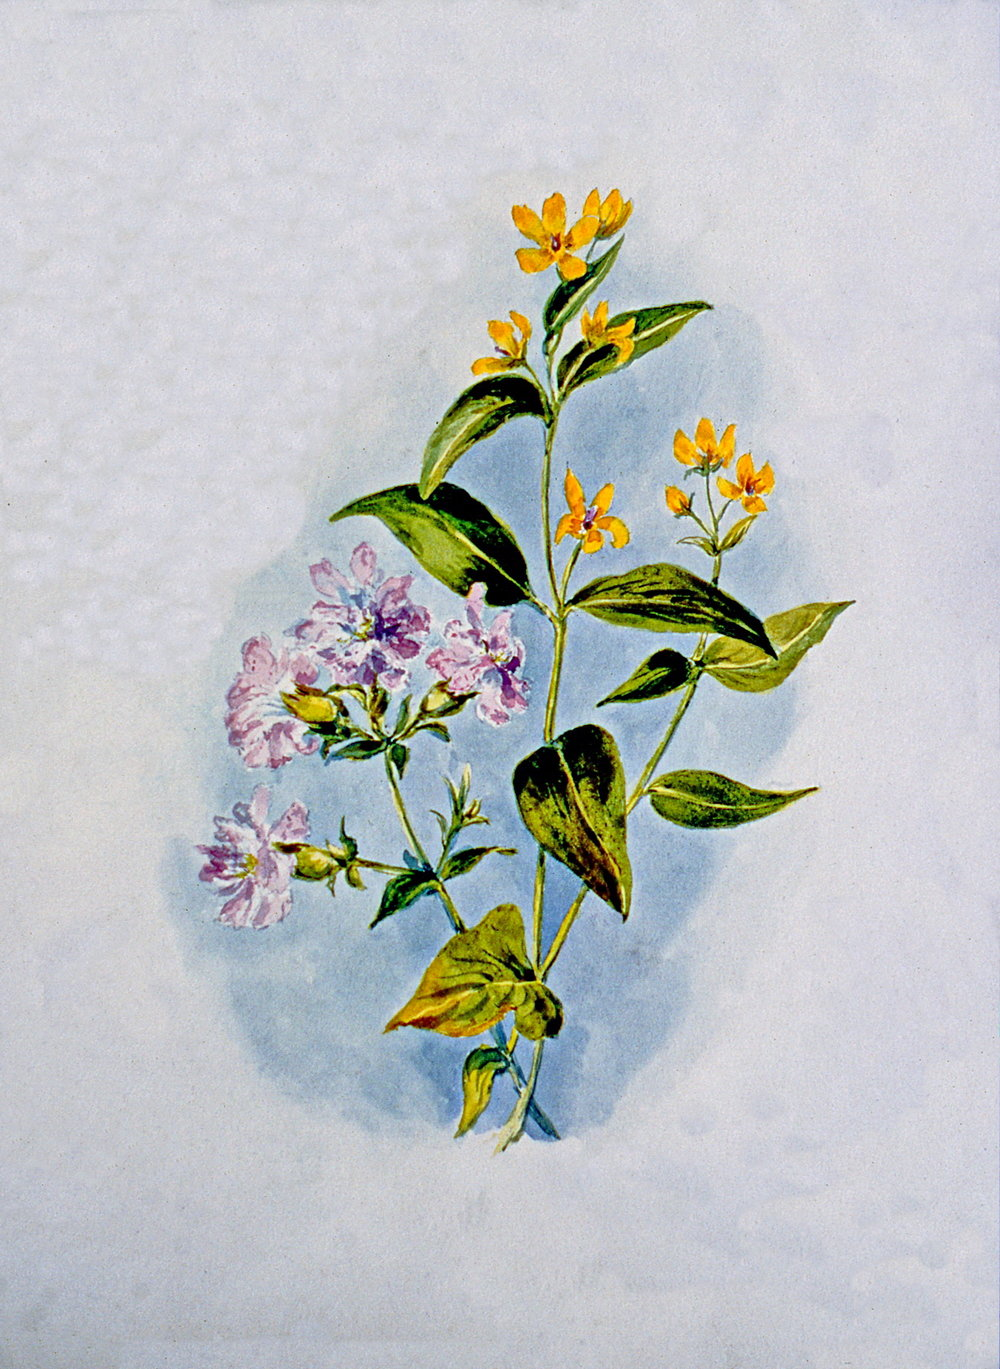 Untitled (Botanical - Pink & Yellow Flowers), n.d., Julia Bullock Webster, watercolour on paper, 35.6 cm x 25.2 cm, 2003.02.29, gift of The Grist Mill at Keremeos